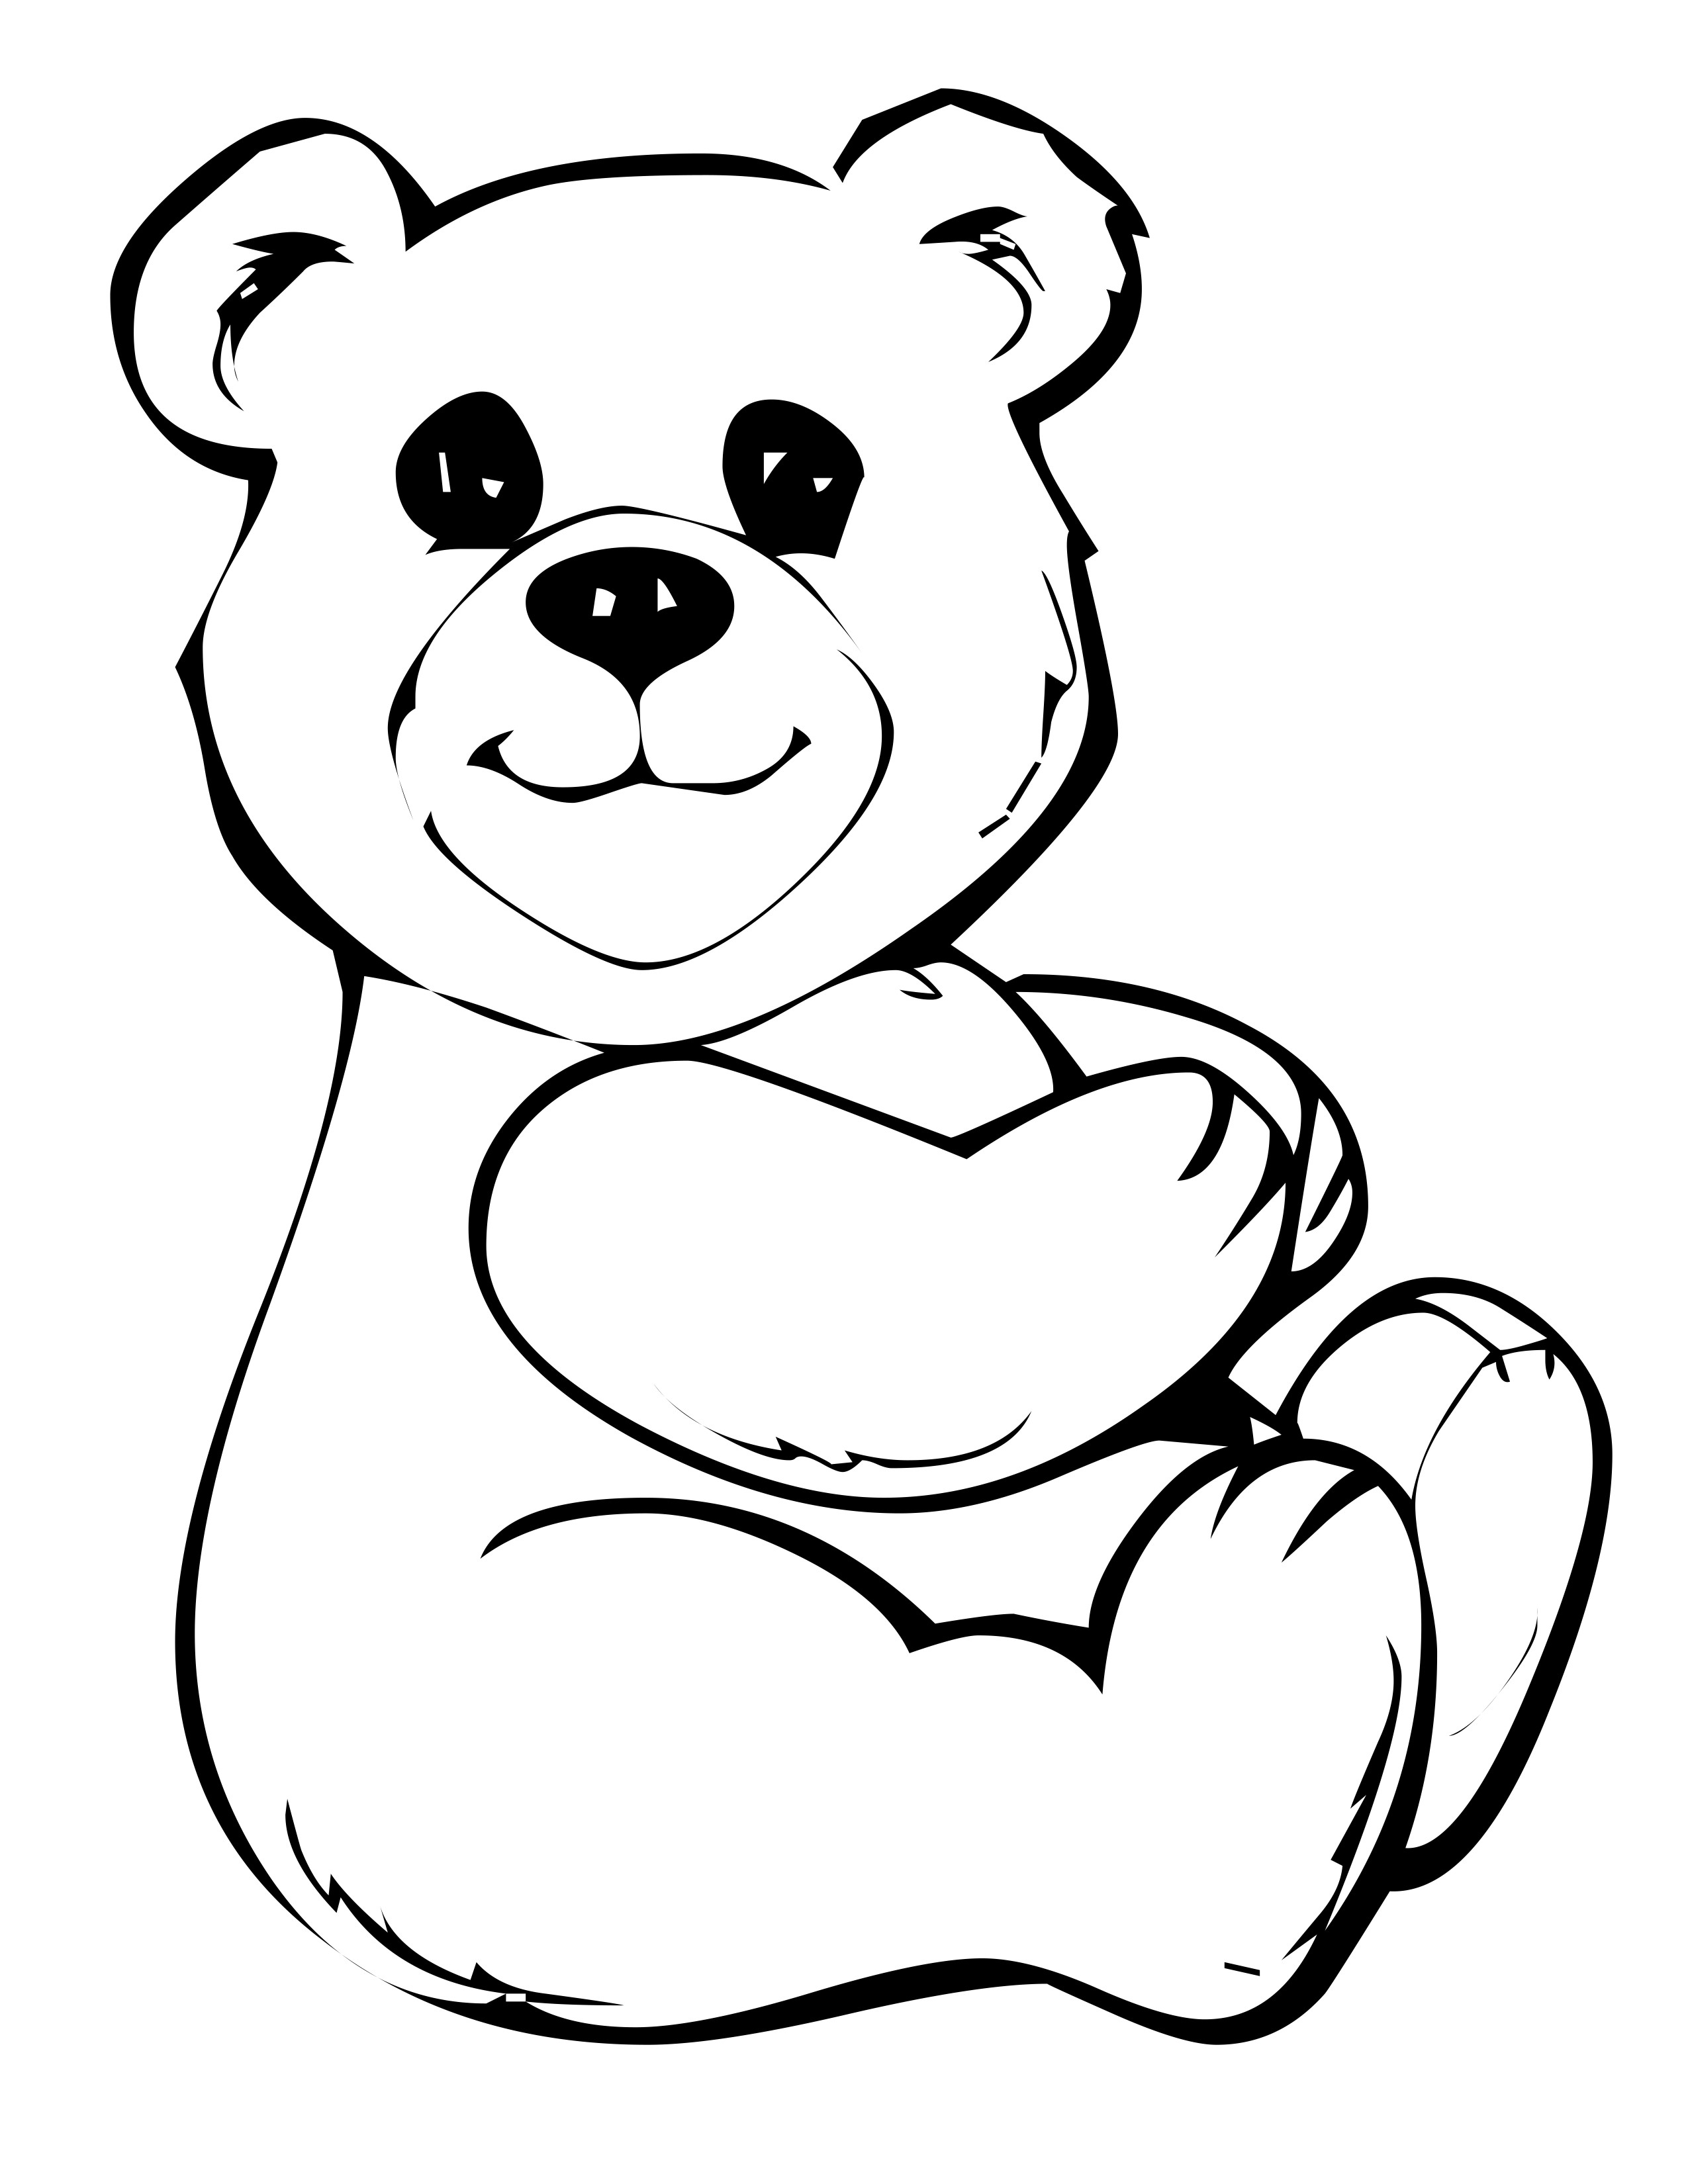 Santa Suit Coloring Page Getcoloringpages With Cute Bear 2160492